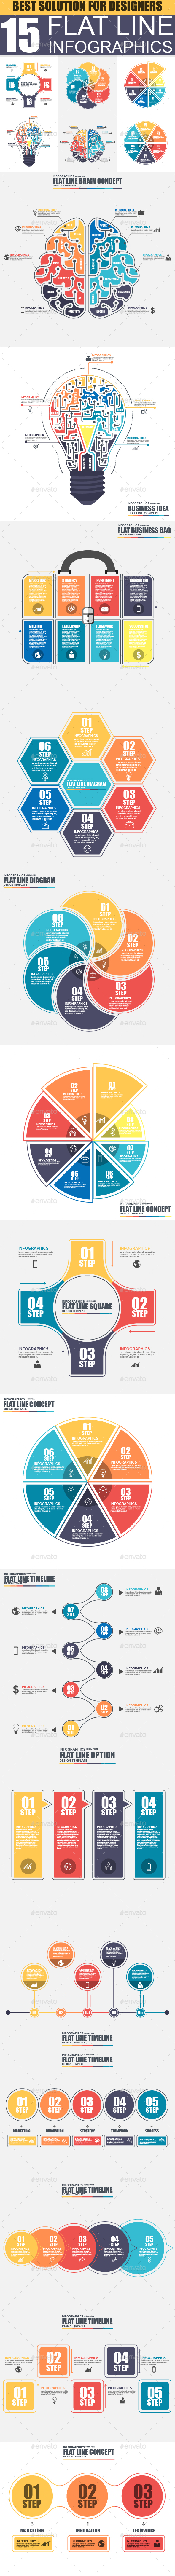 Set of Flat Line Business Infographic